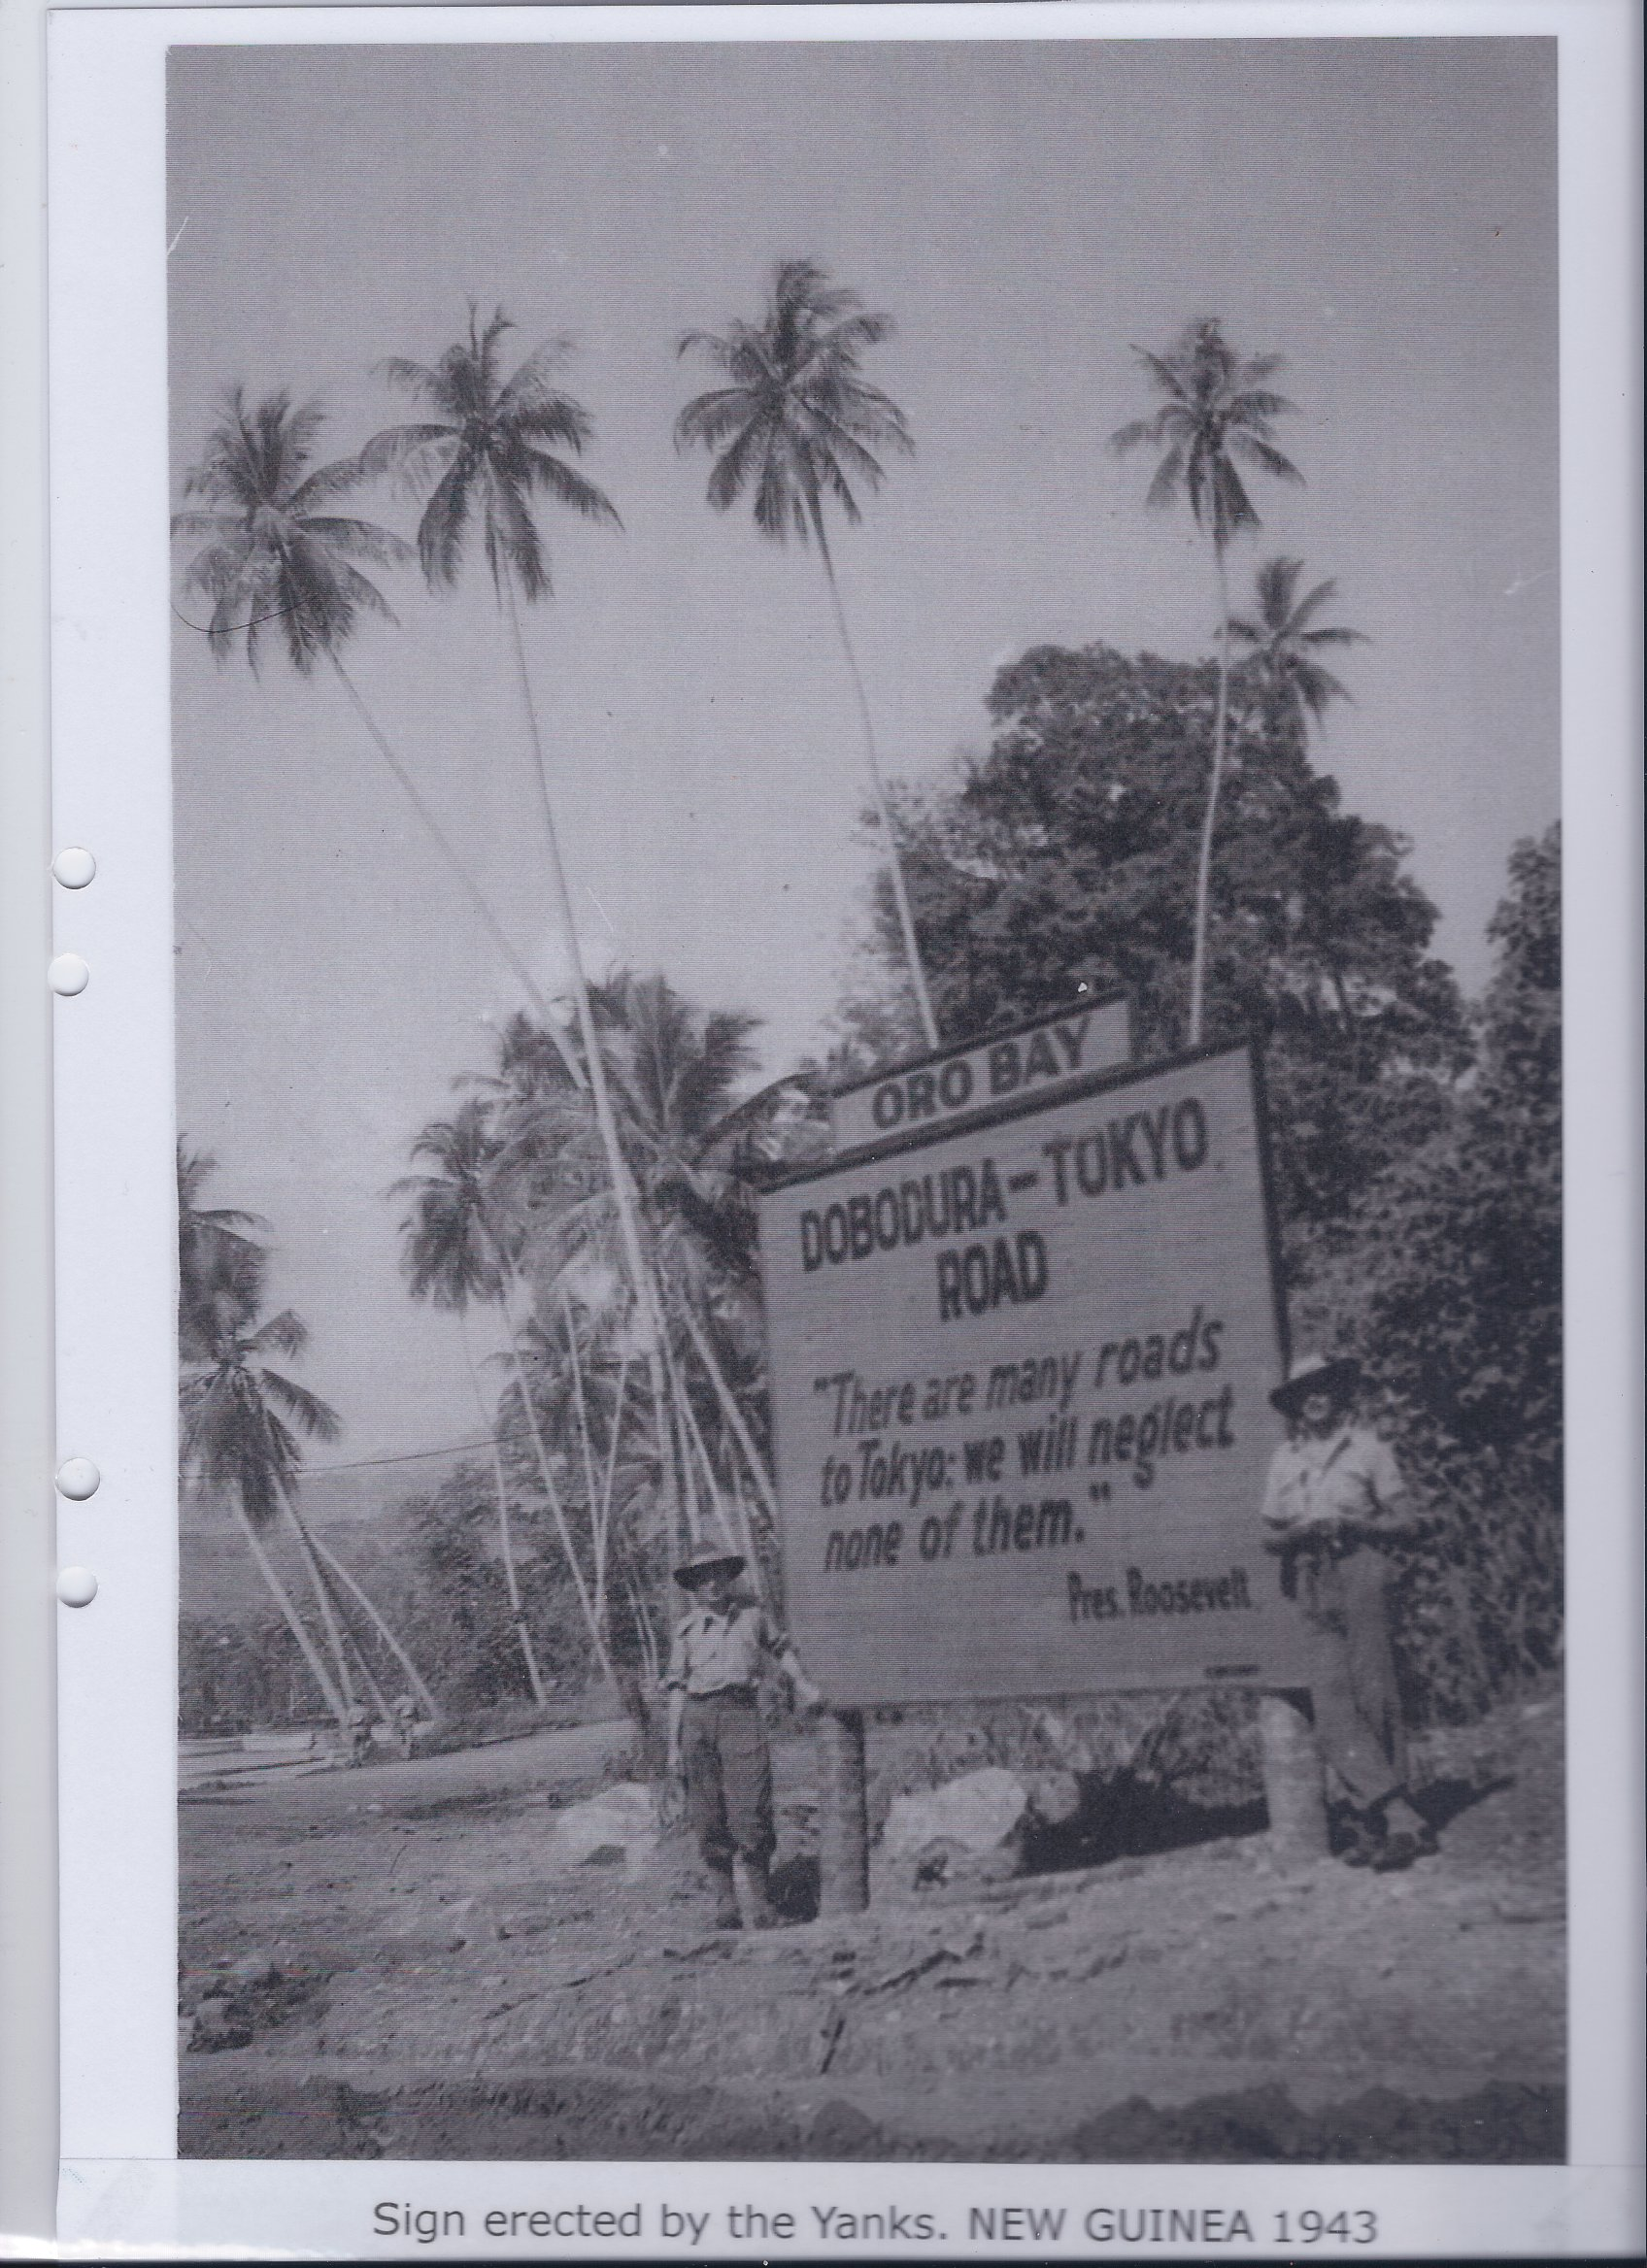 Sign erected by the Yanks. NEW GUINEA 1943